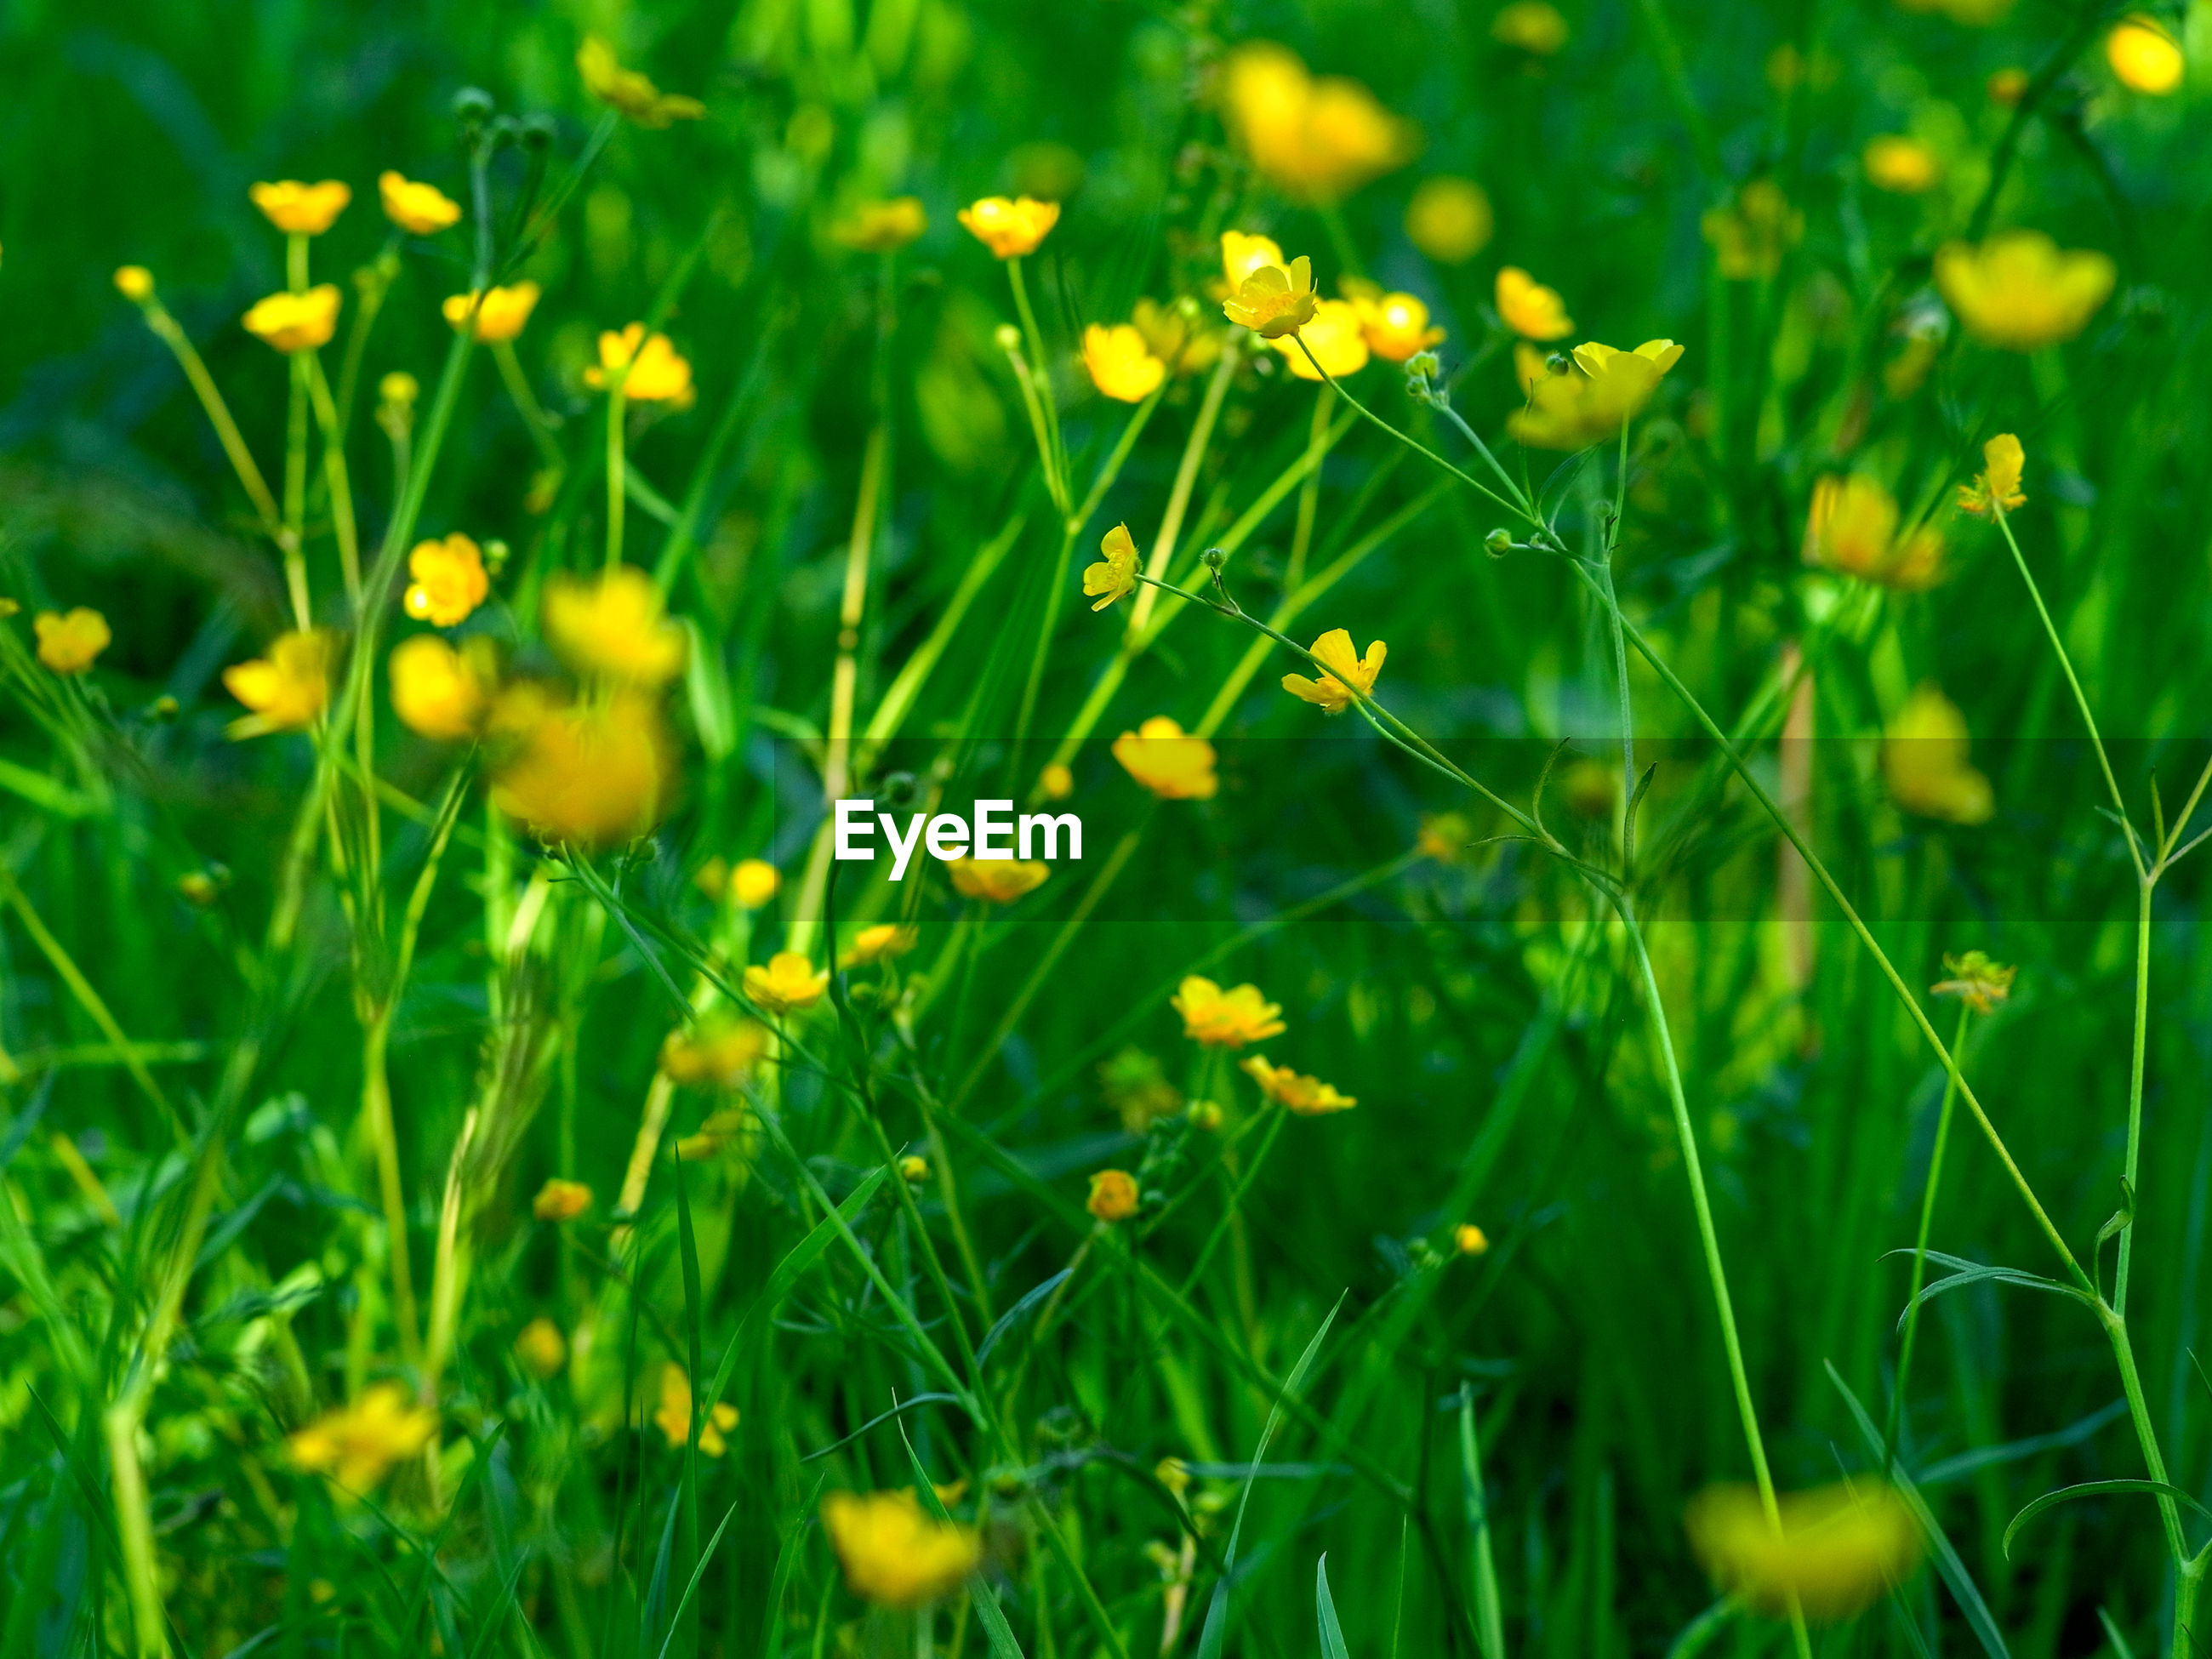 CLOSE-UP OF YELLOW FLOWERING PLANTS GROWING ON FIELD